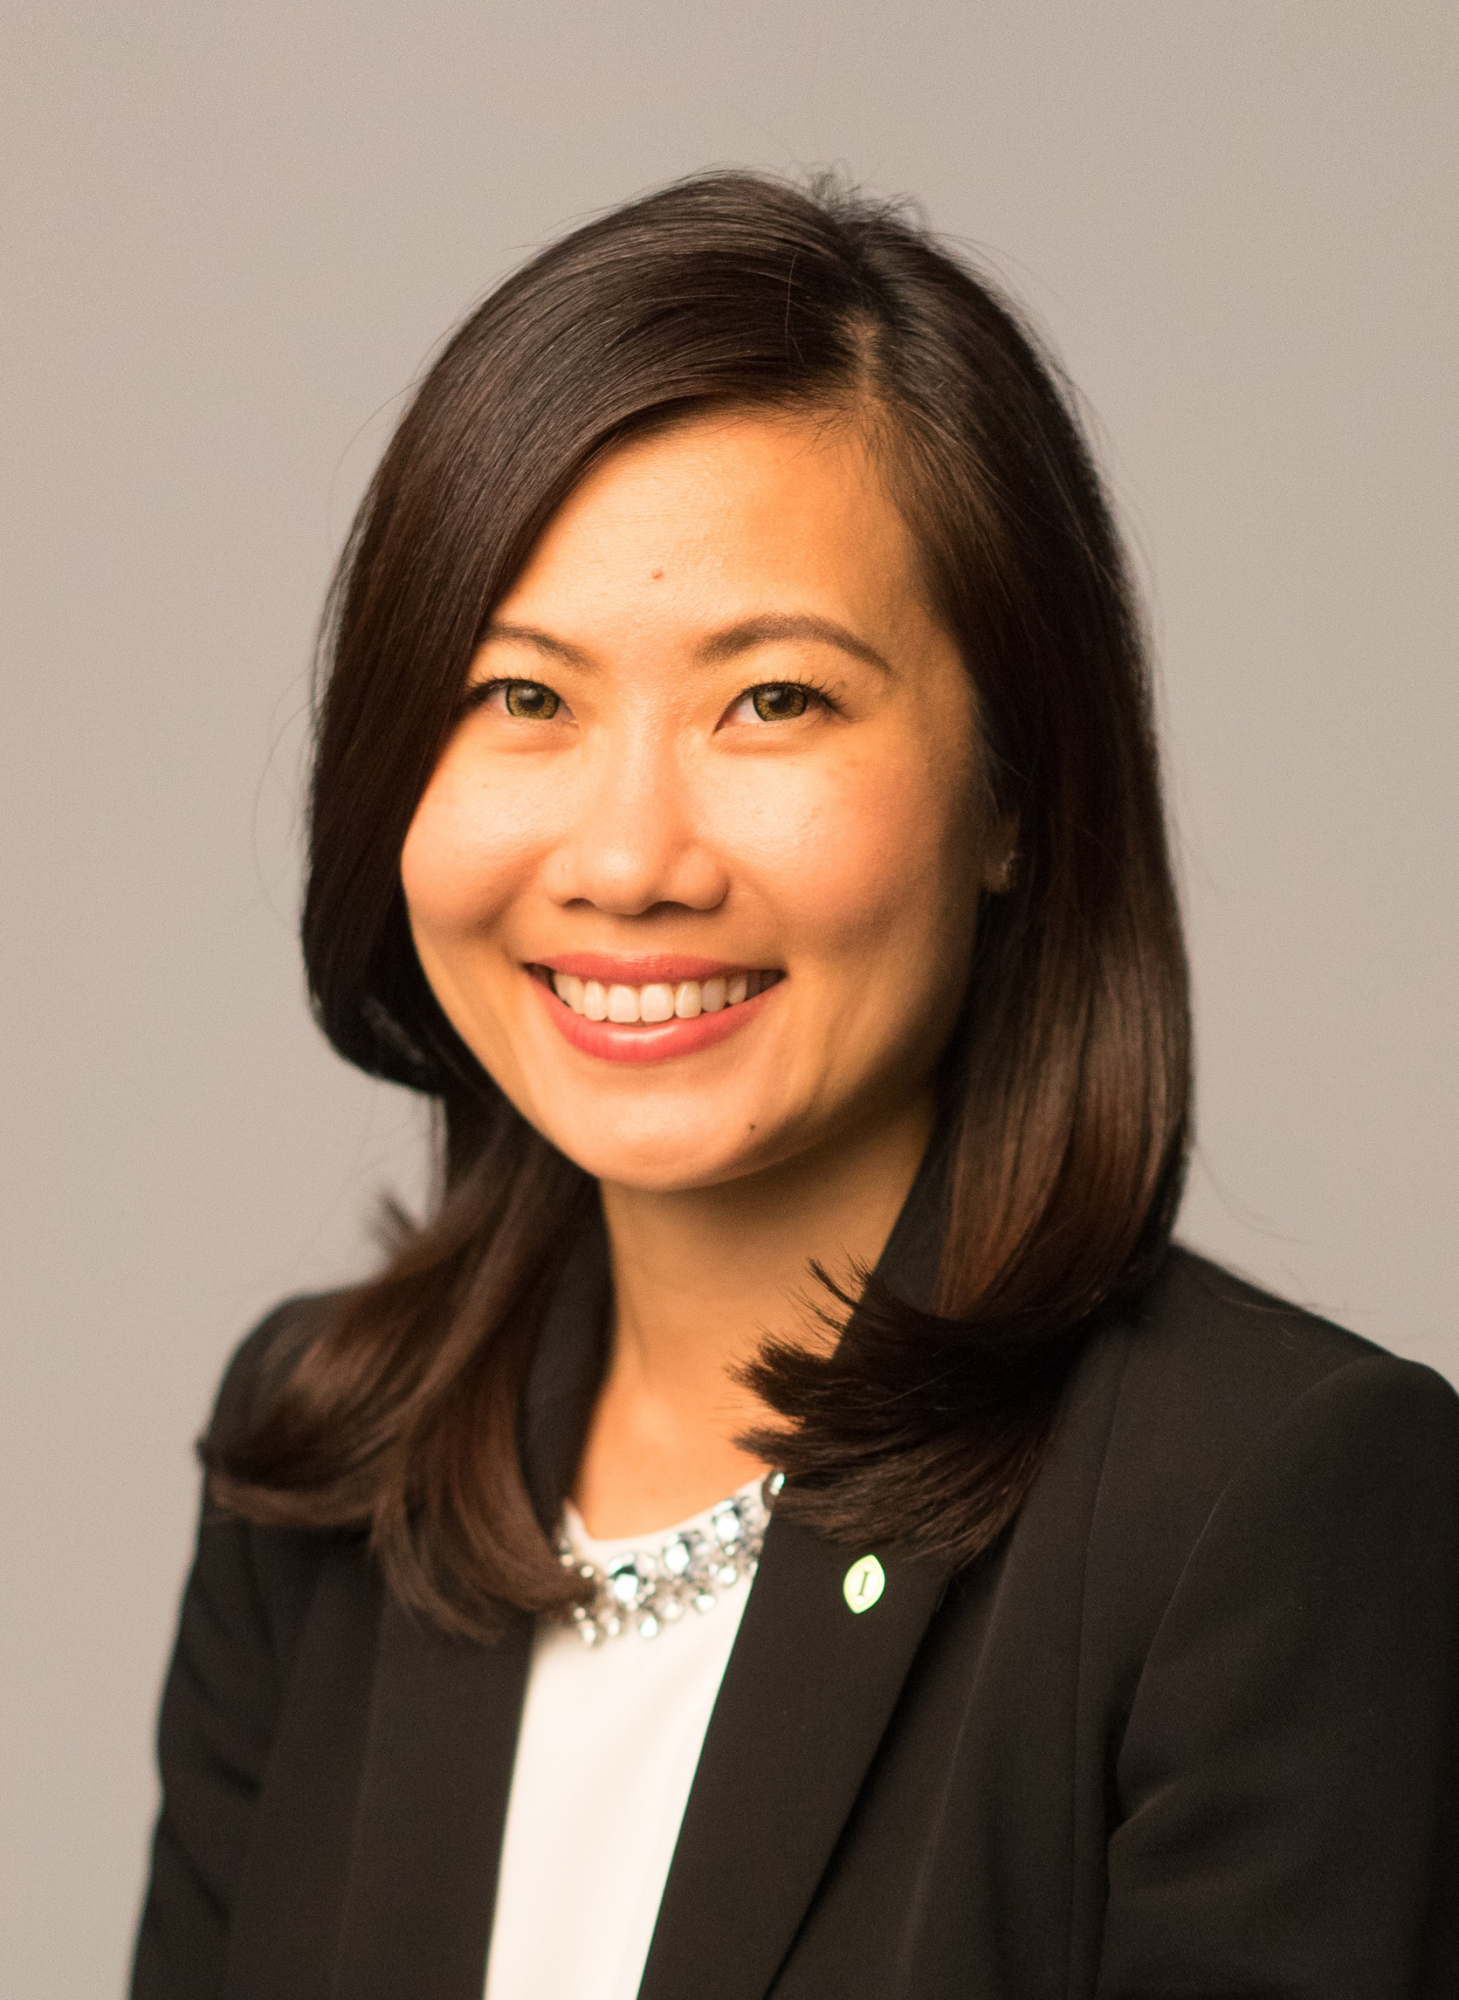 Jessica Koh has been appointed Director of Sales and